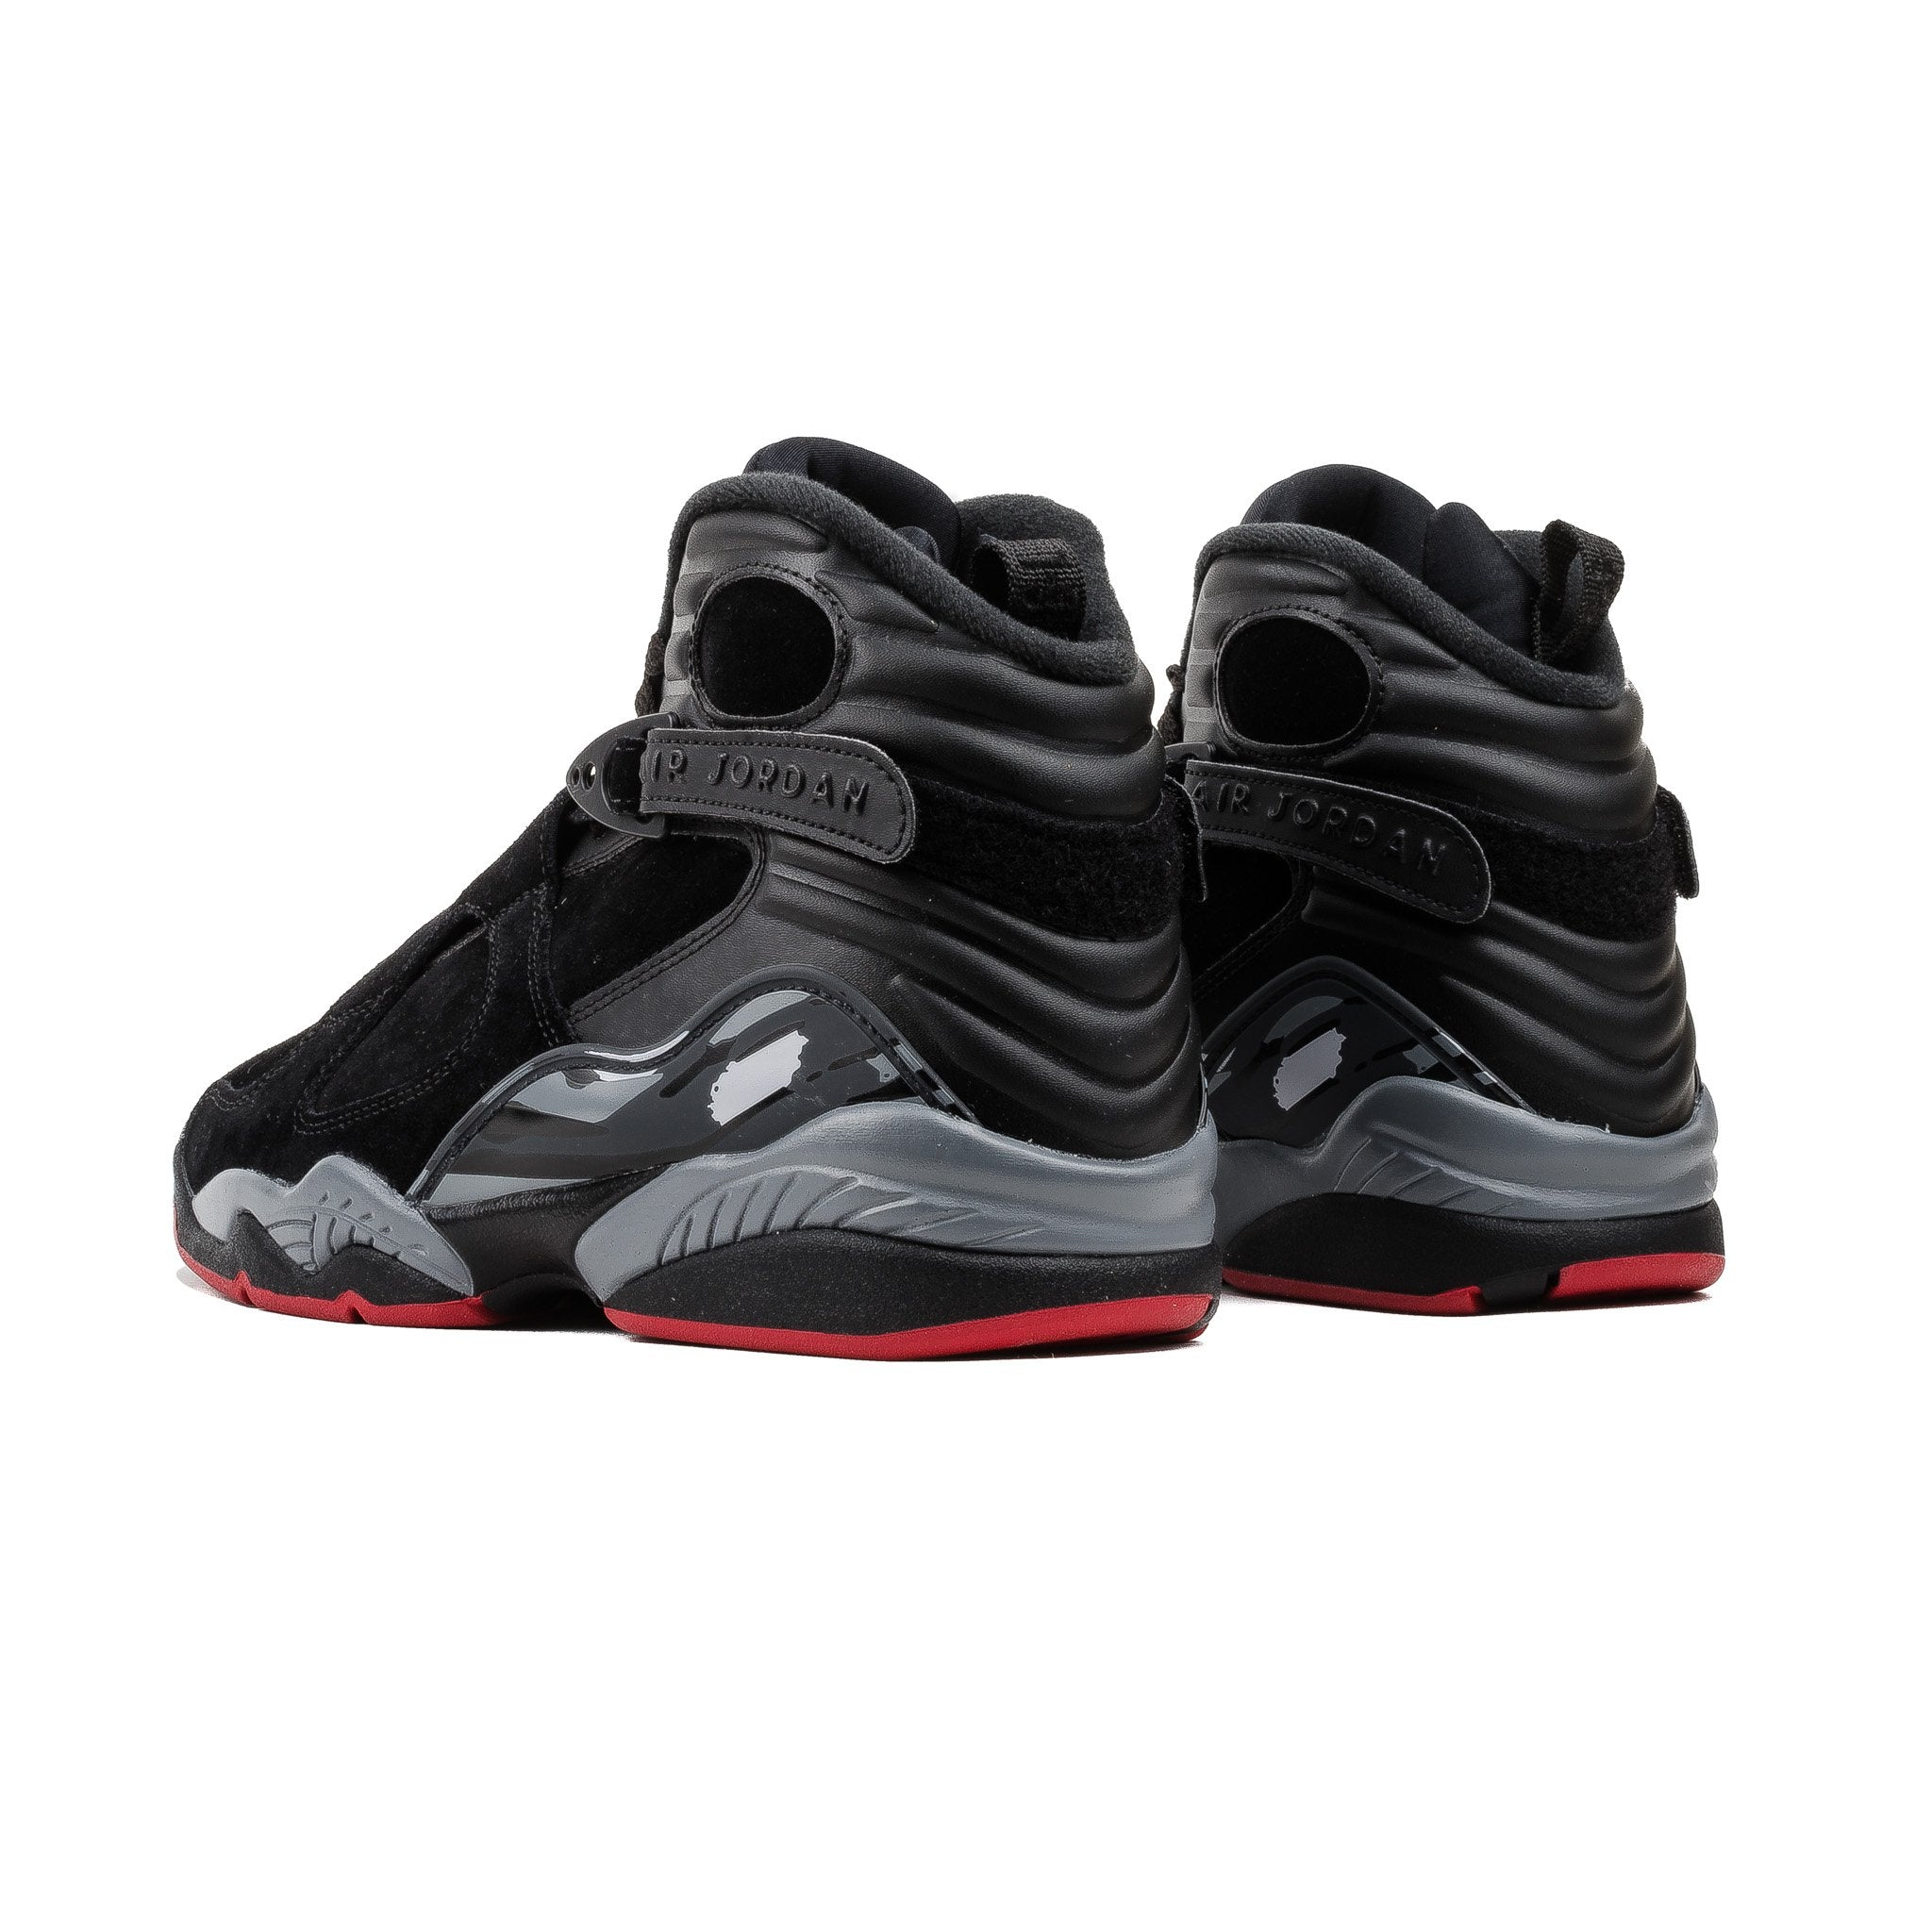 Air Jordan 8 Retro 305381-022 Black